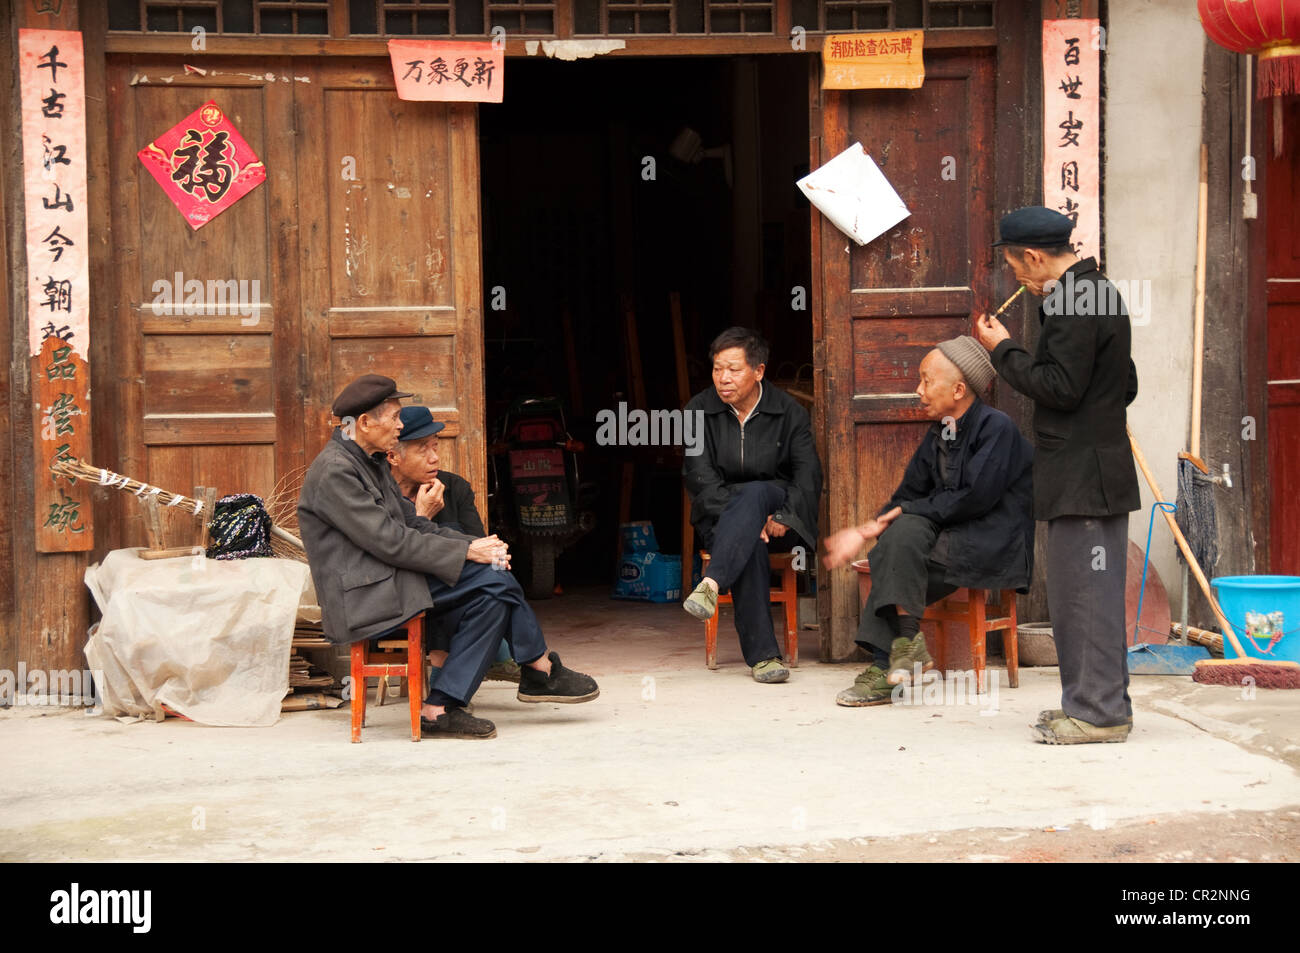 Elderly Dong men seated in front of a door, Zhaoxing Dong Village, China Stock Photo